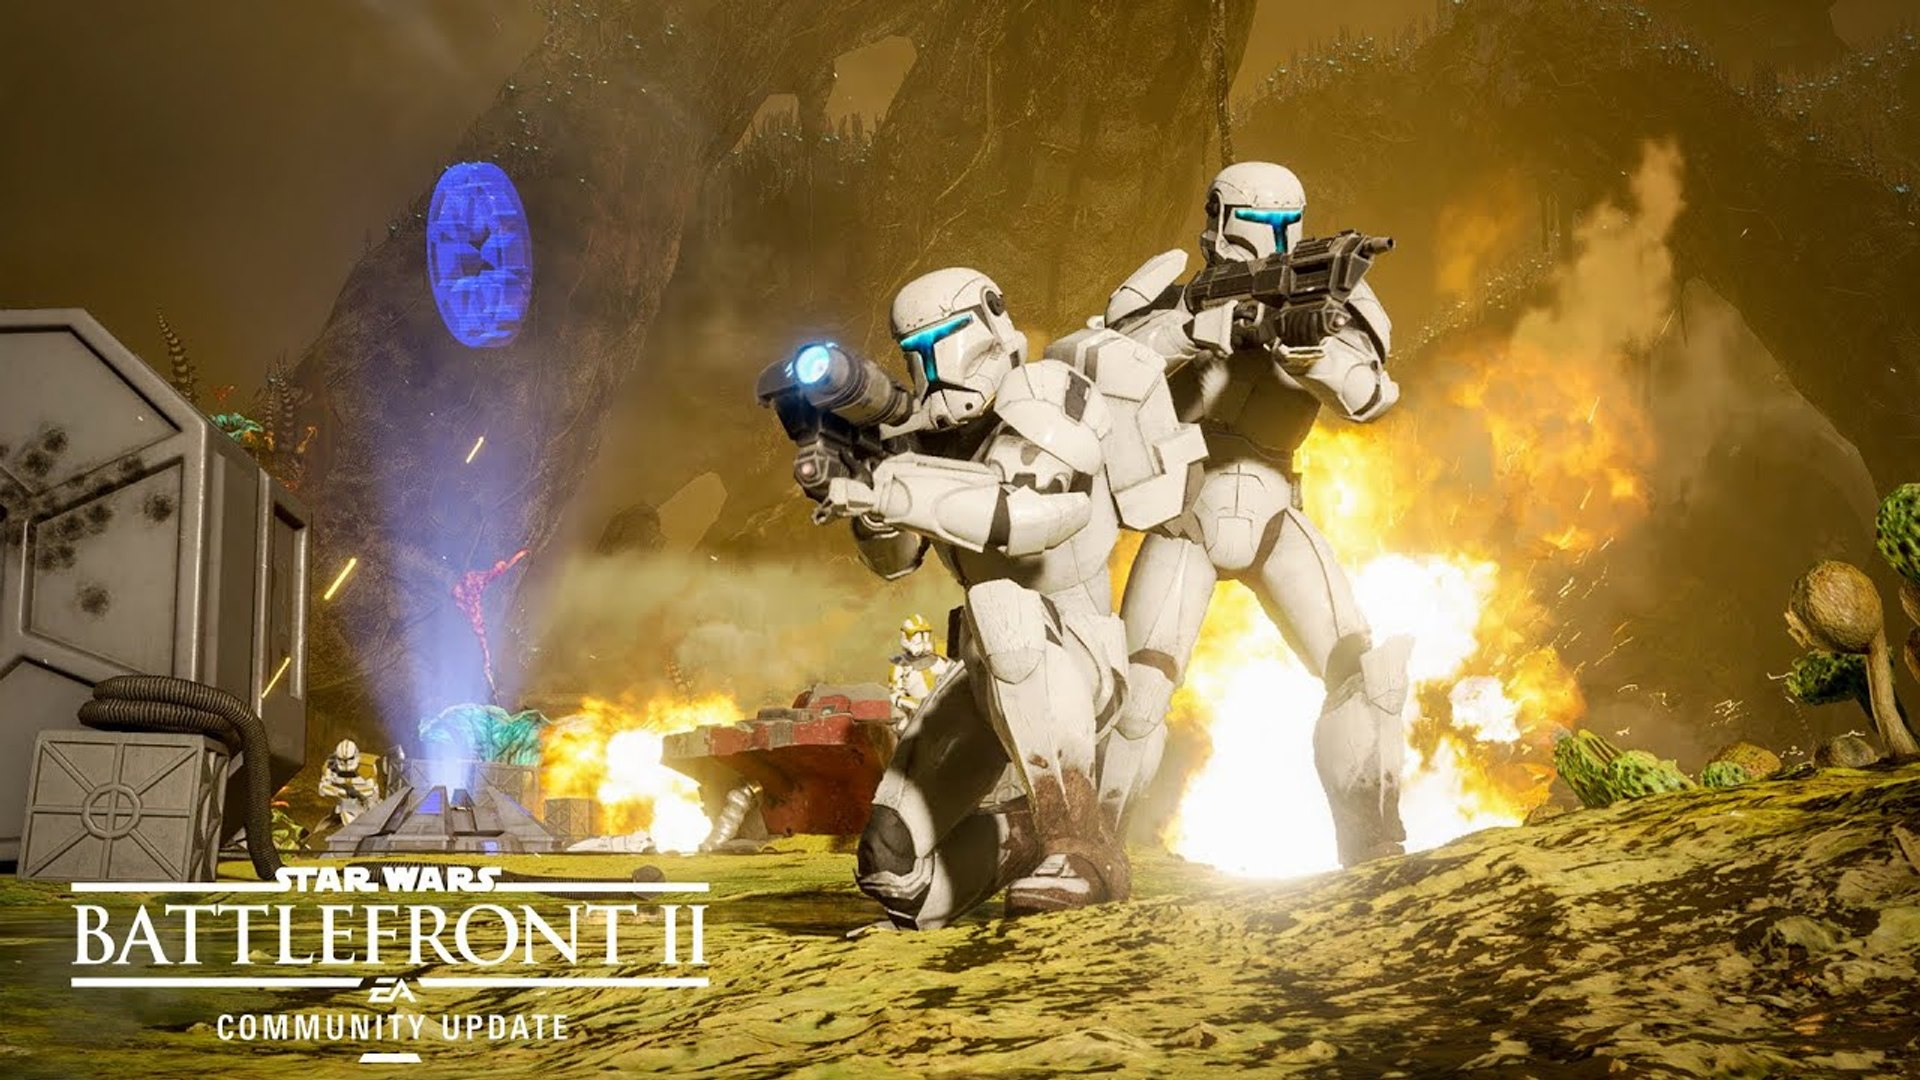 Star Wars Battlefront 2 New Planet Modes Reinforcements Community Update 2019 Video Dailymotion